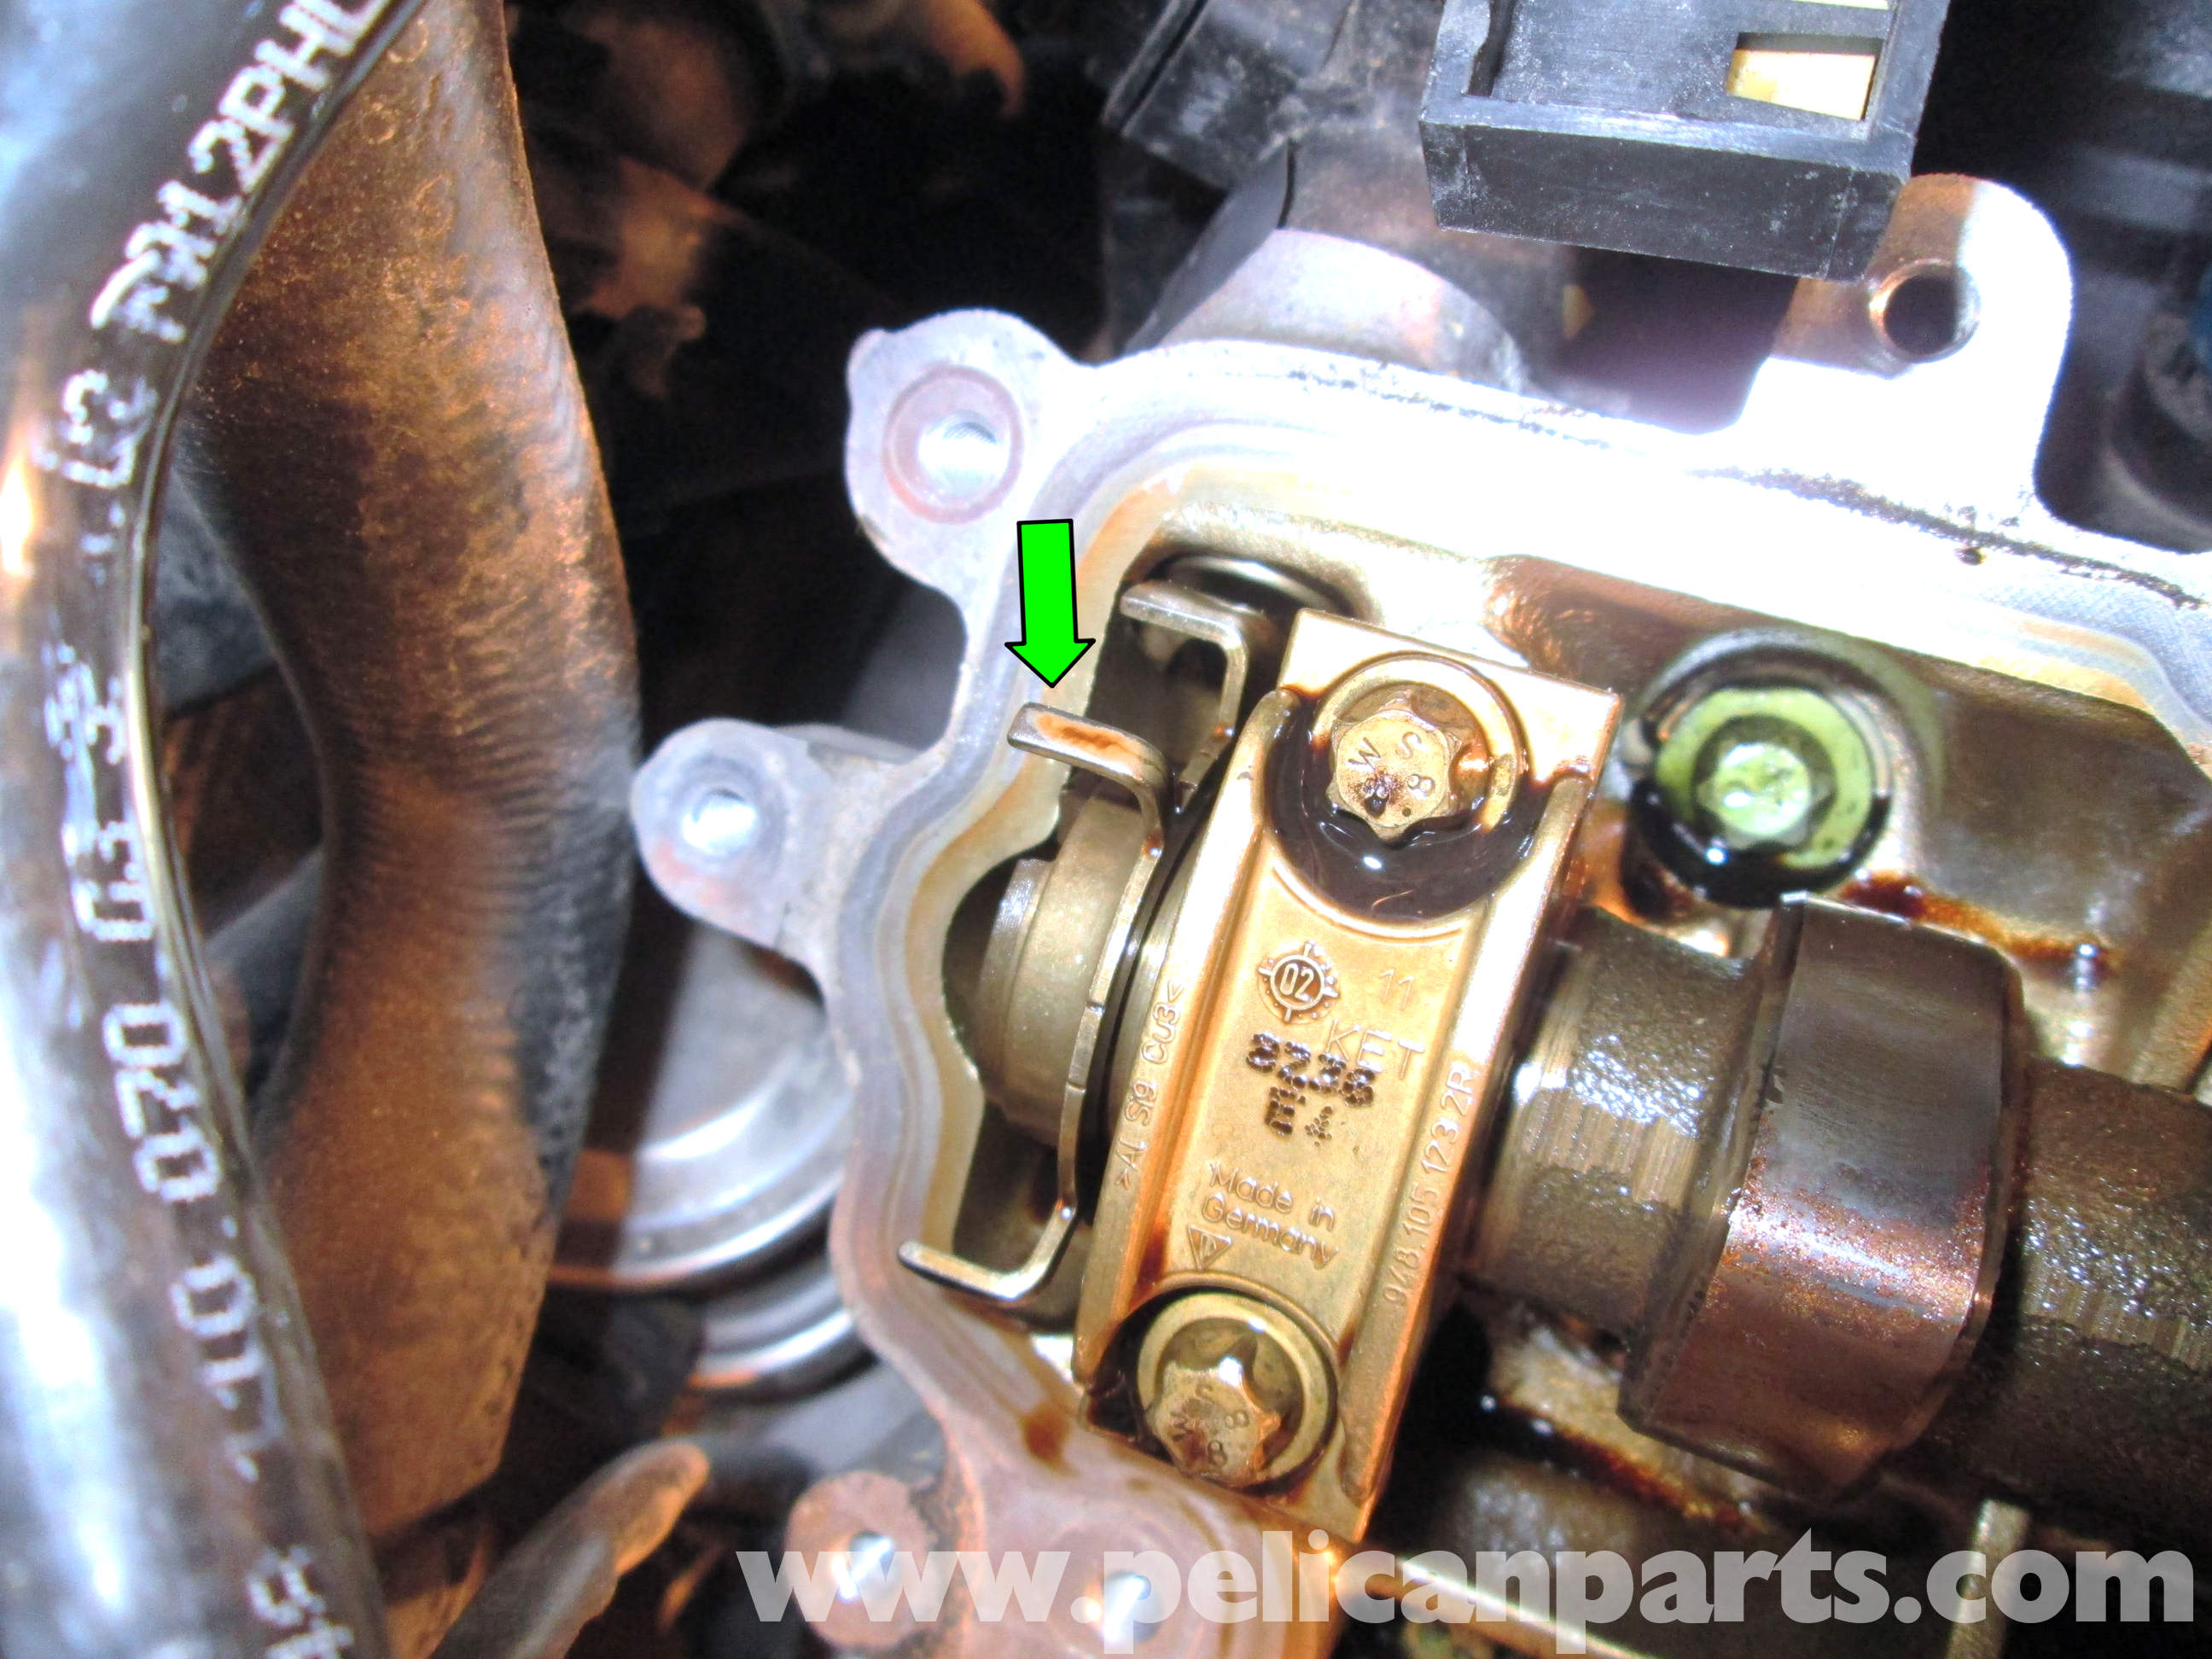 Pelican Technical Article Porsche Cayenne Valve Cover Gasket 993 Engine Diagram Large Image Extra